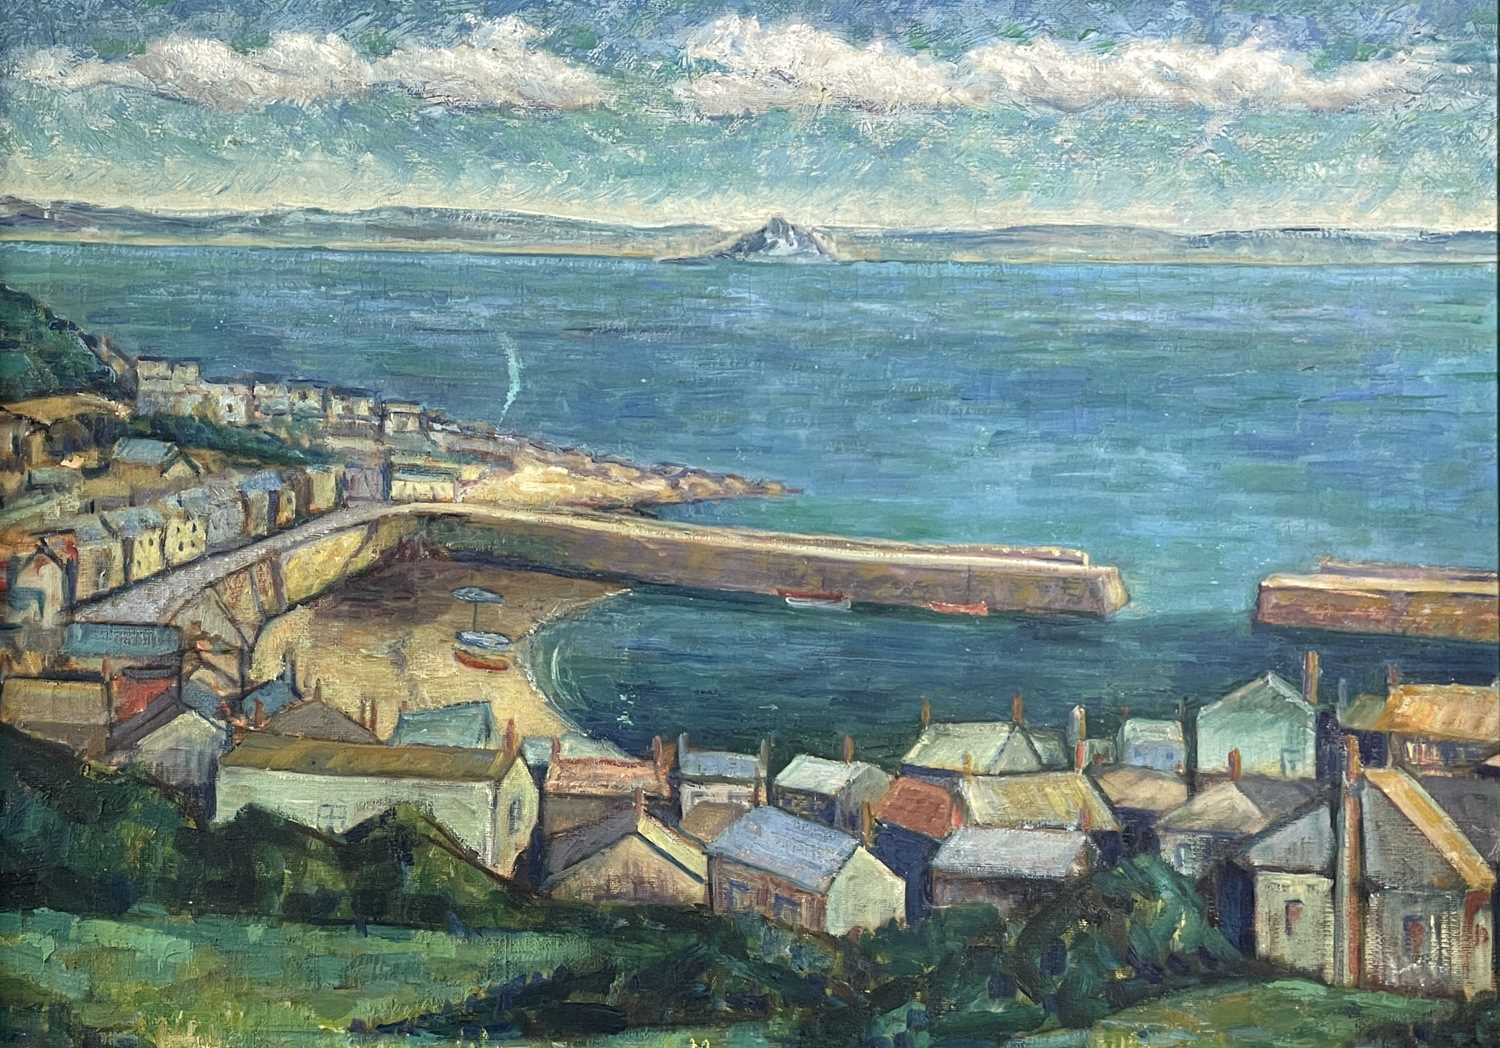 Newlyn School A View of Mounts Bay Overlooking Mousehole Harbour Oil on canvas 50 x 70cm